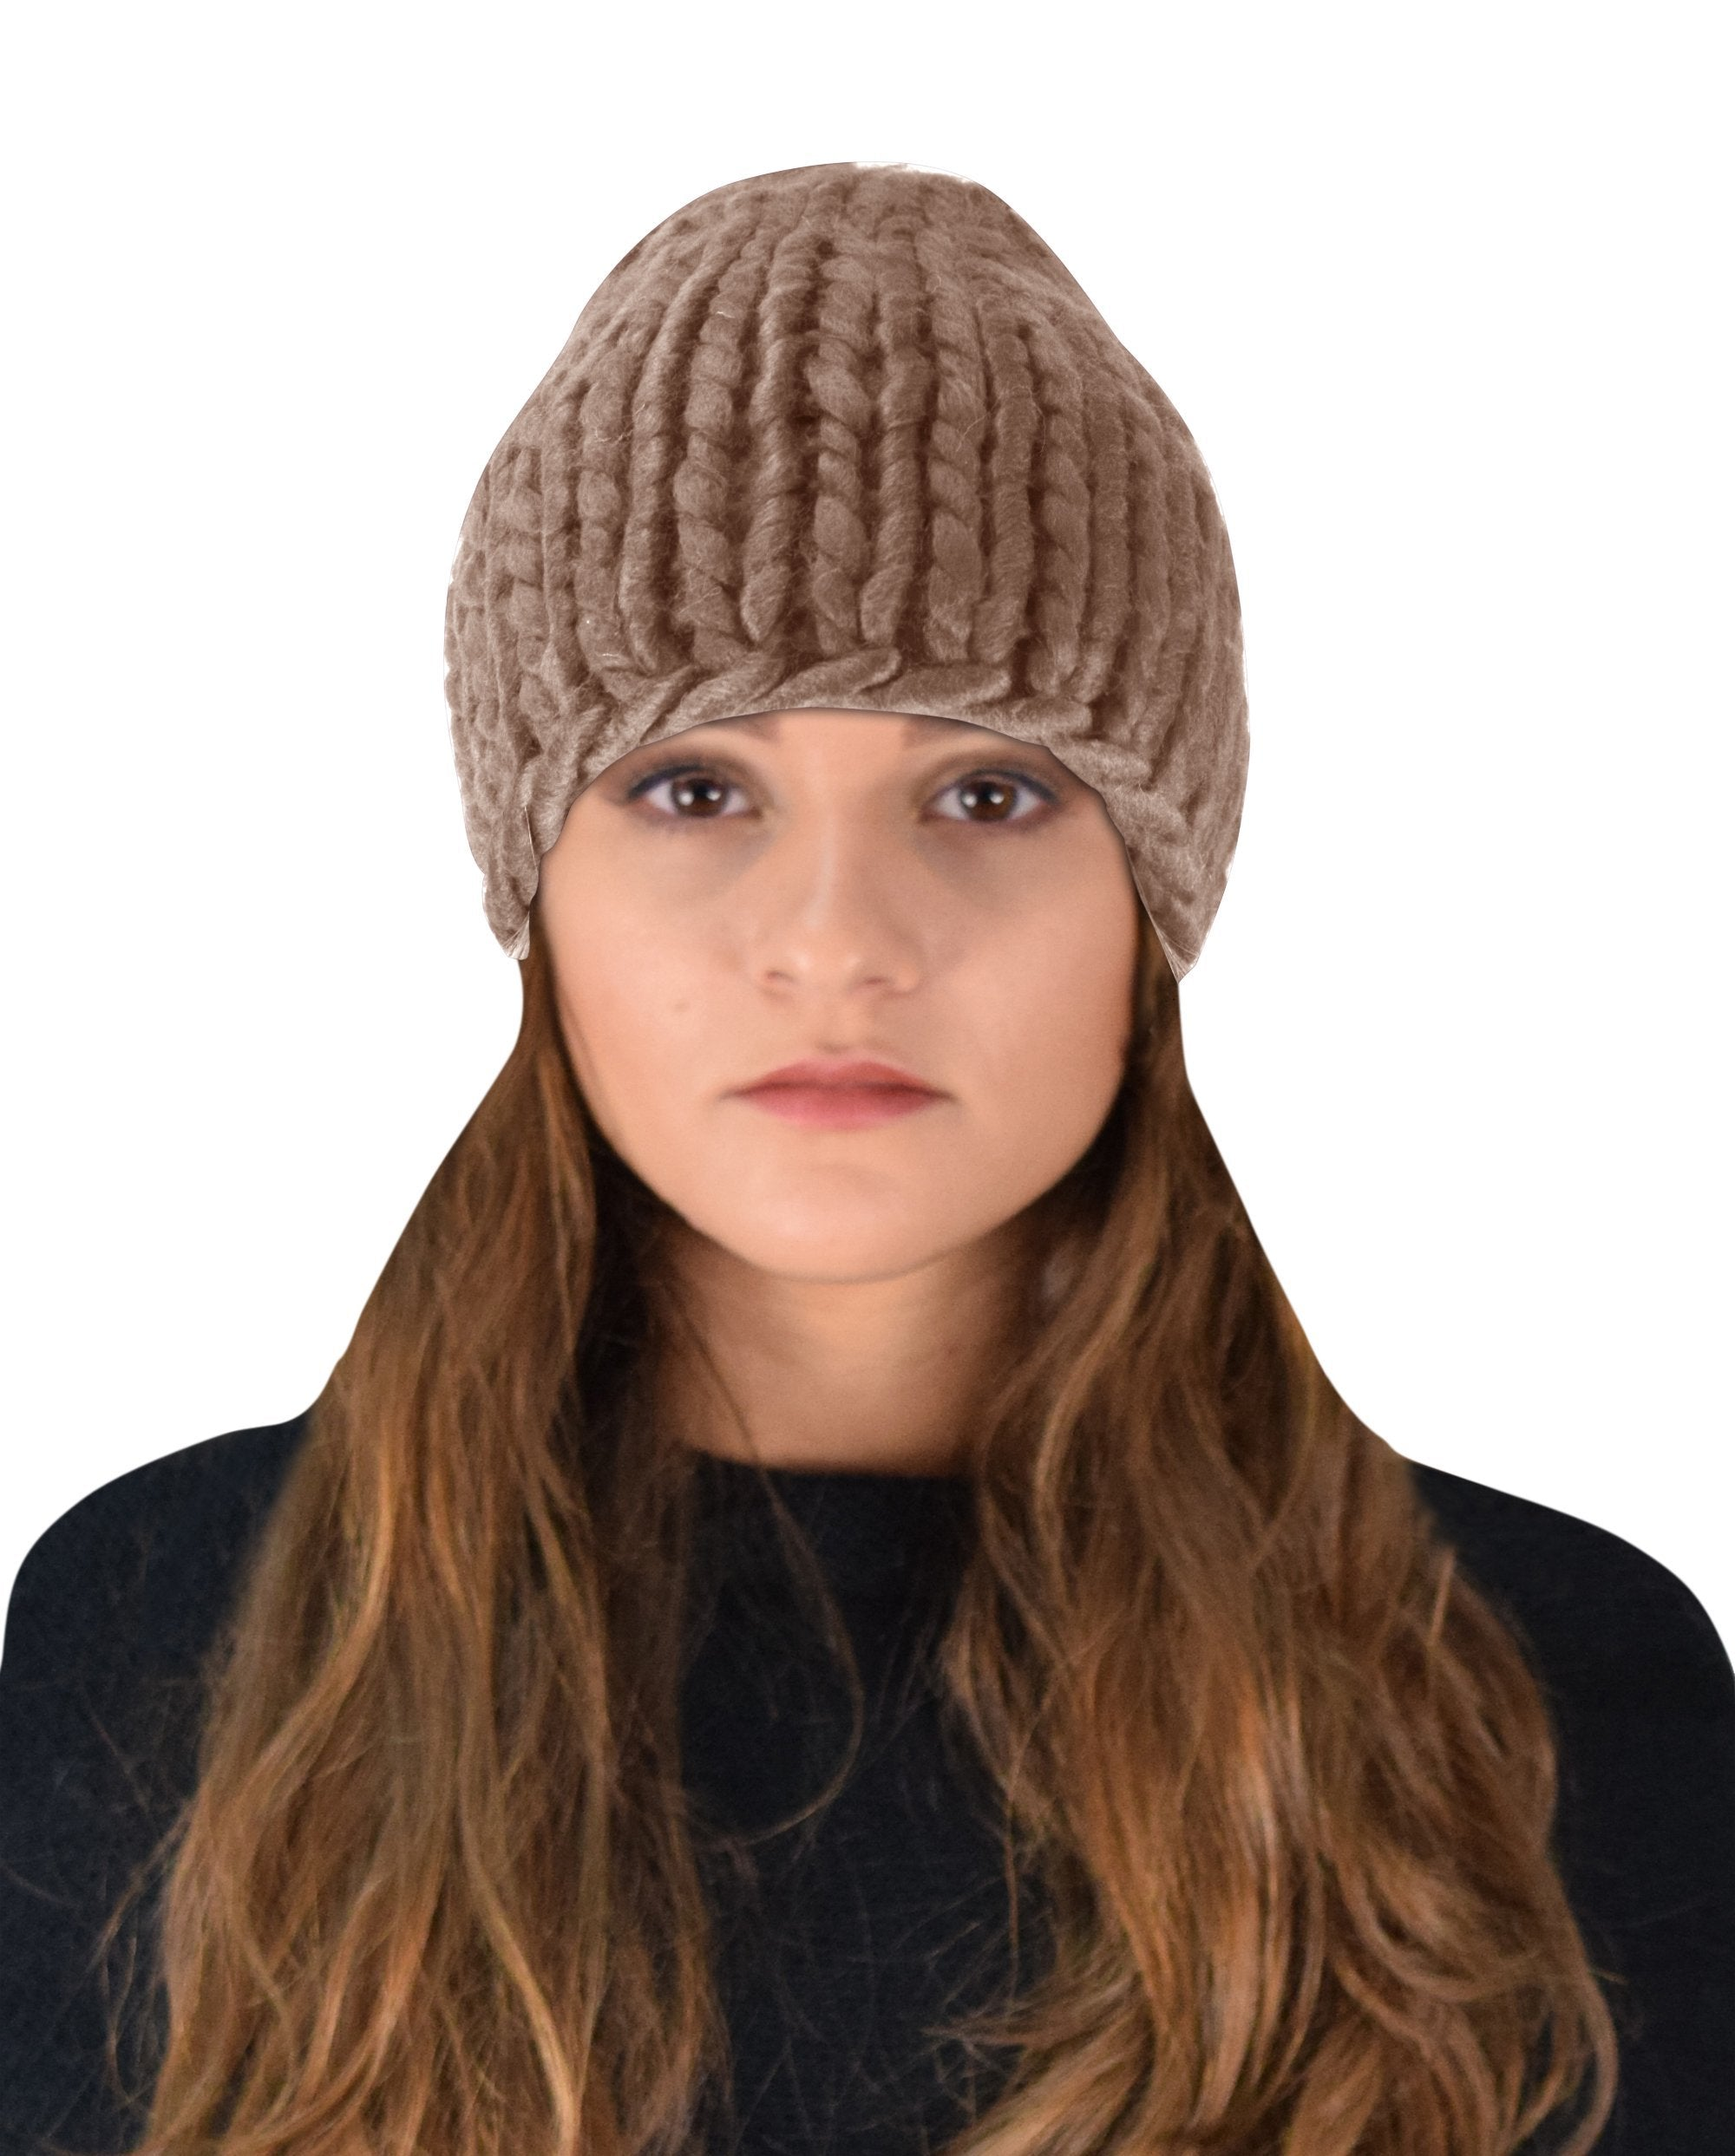 Thick Warm Soft Cable Knit Hat Beanie Slouchy